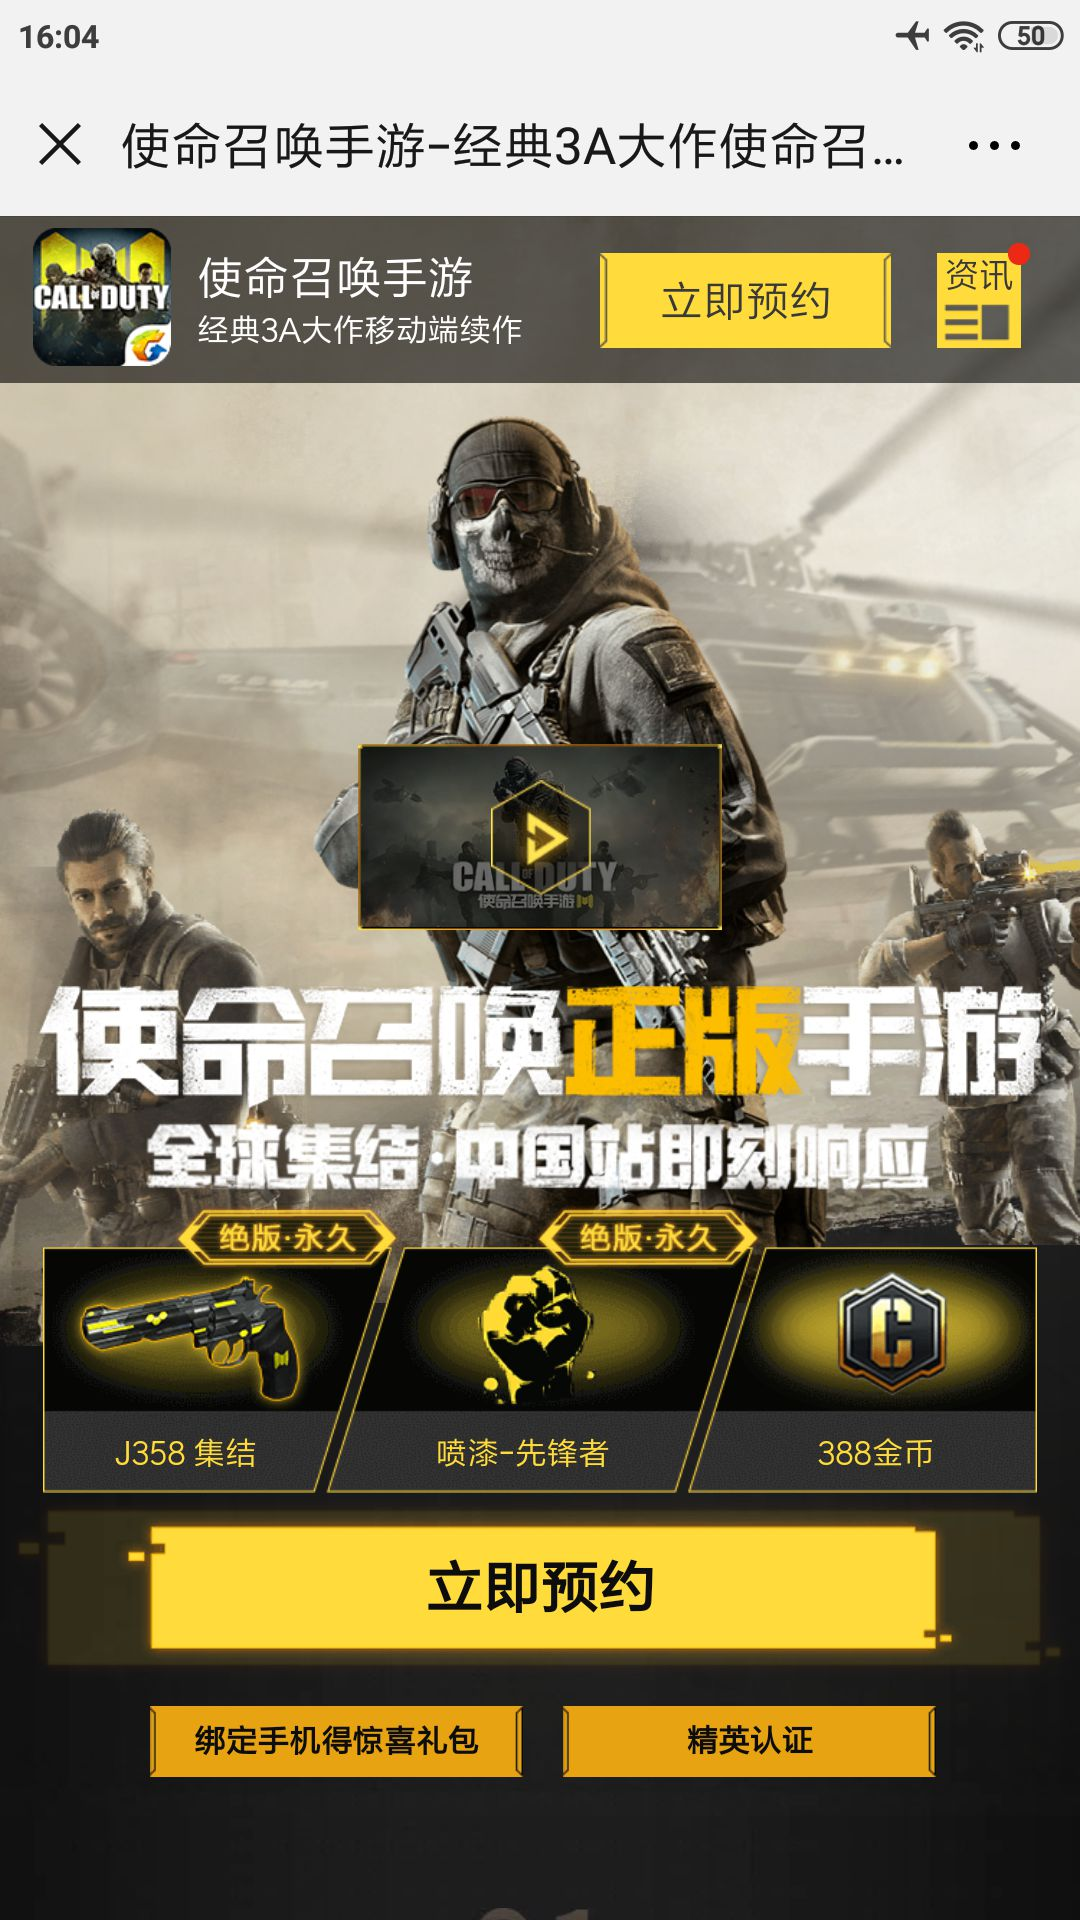 Call Of Duty Mobile Call Of Duty Mobile Garenadiscussions Taptap Call Of Duty Mobile Garena Group